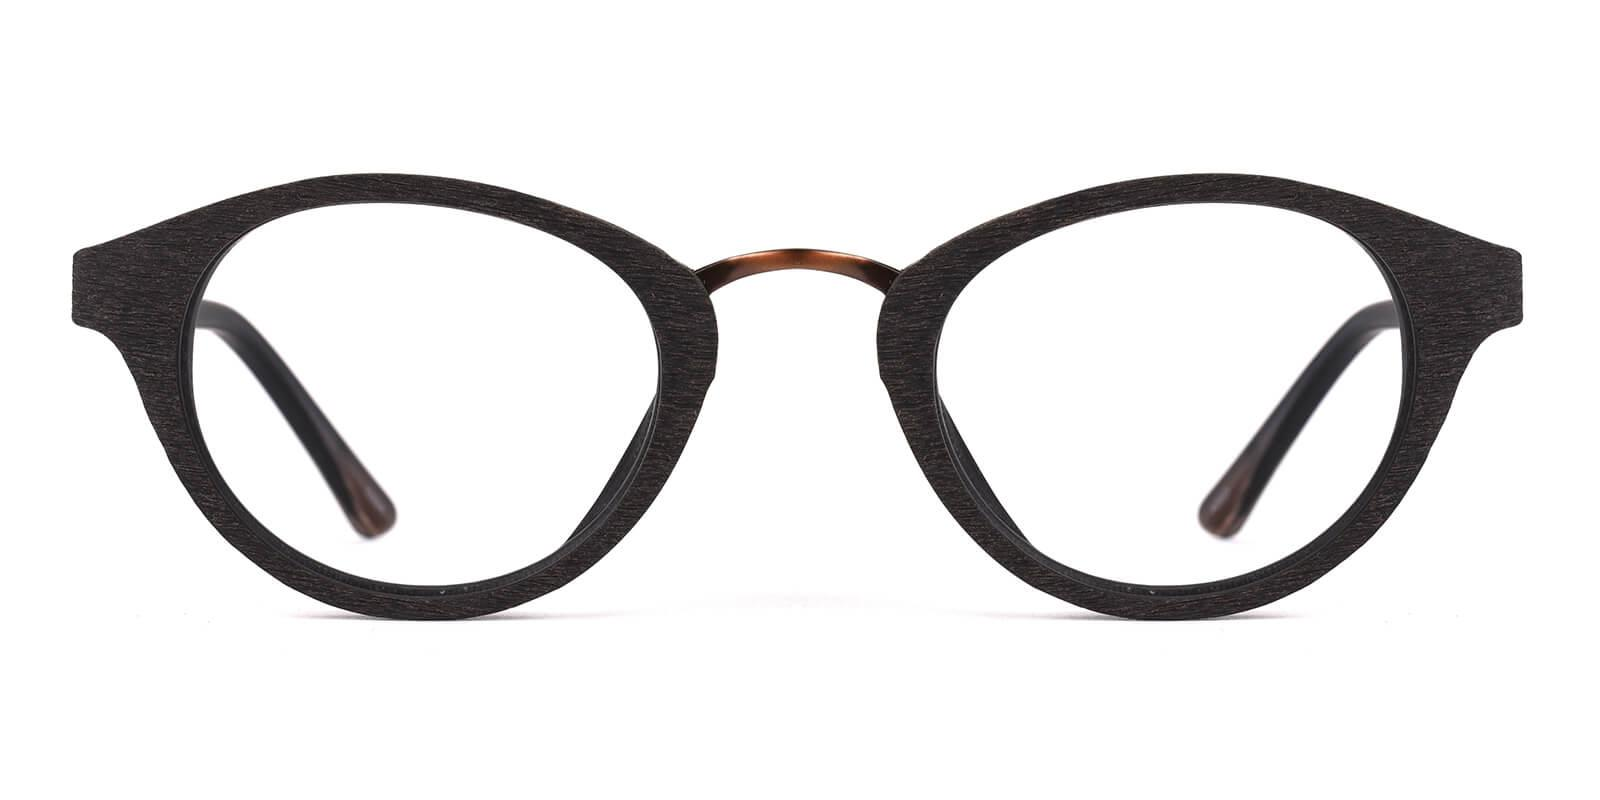 Haiden-Brown-Oval-Acetate-Eyeglasses-additional2